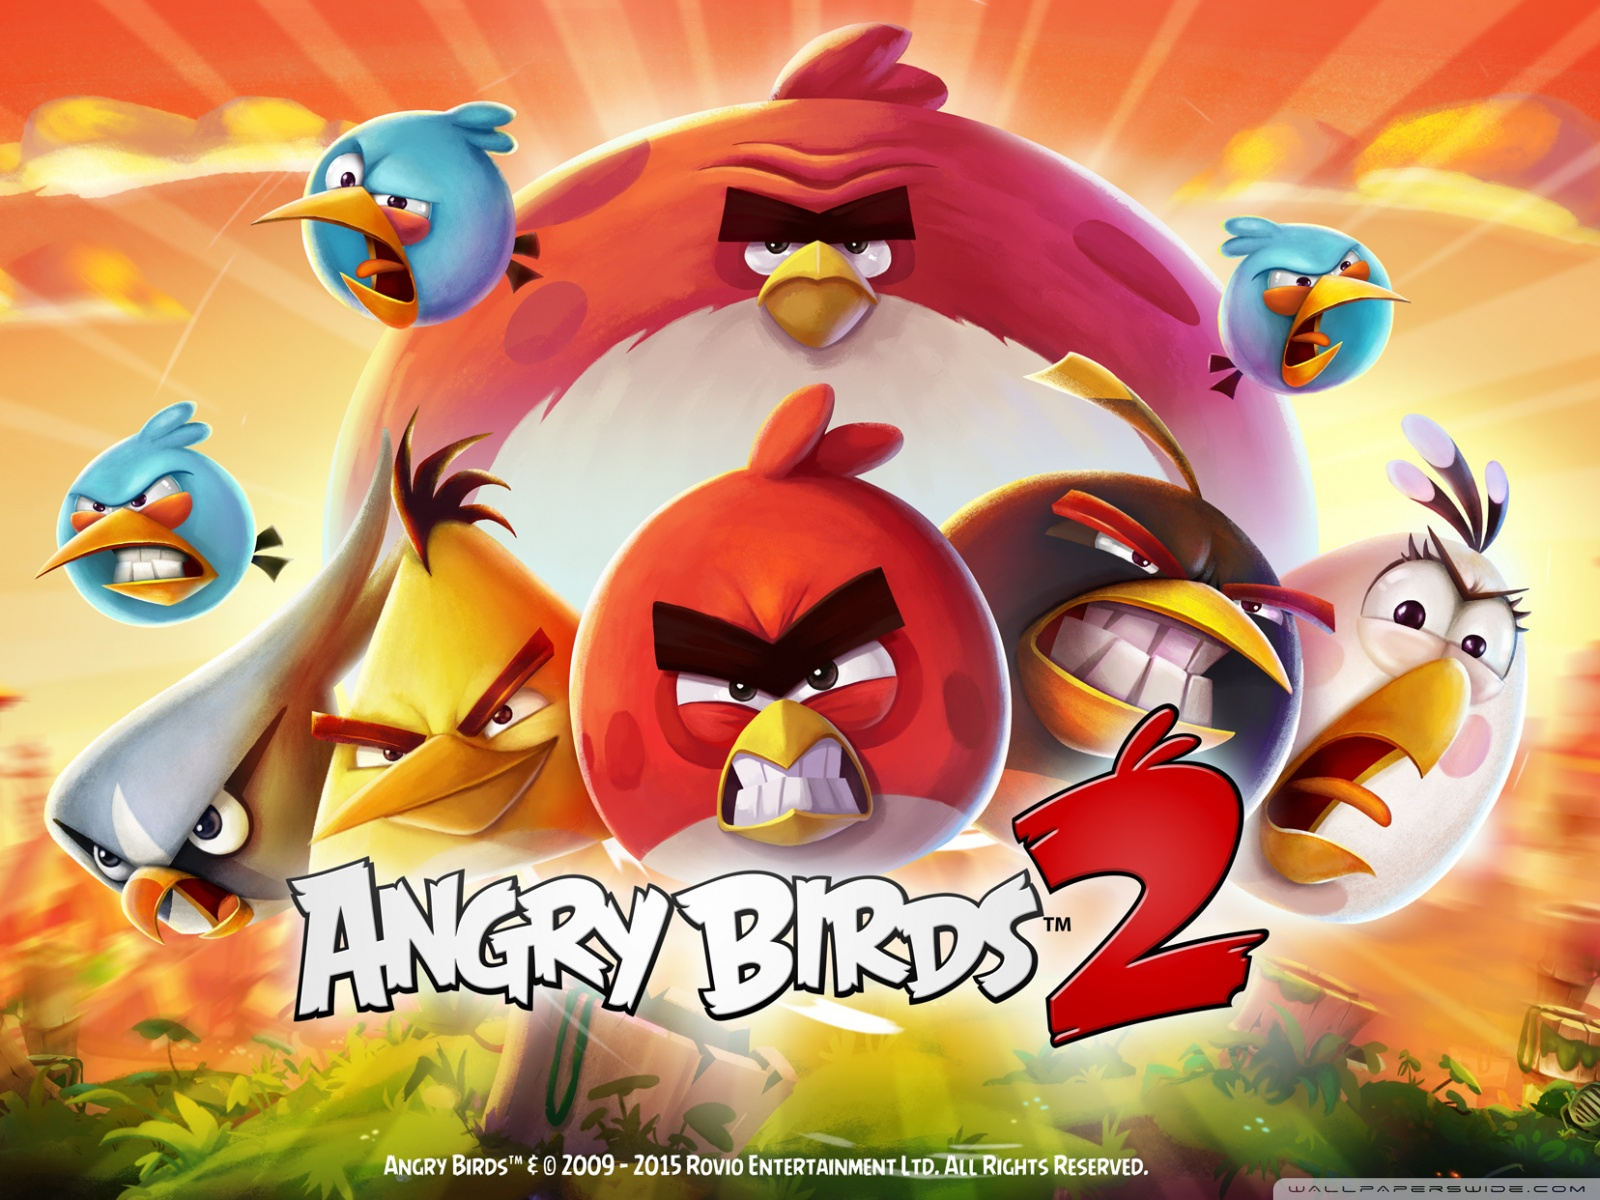 Free Angry Birds 2 The Flock  phone wallpaper by stencen